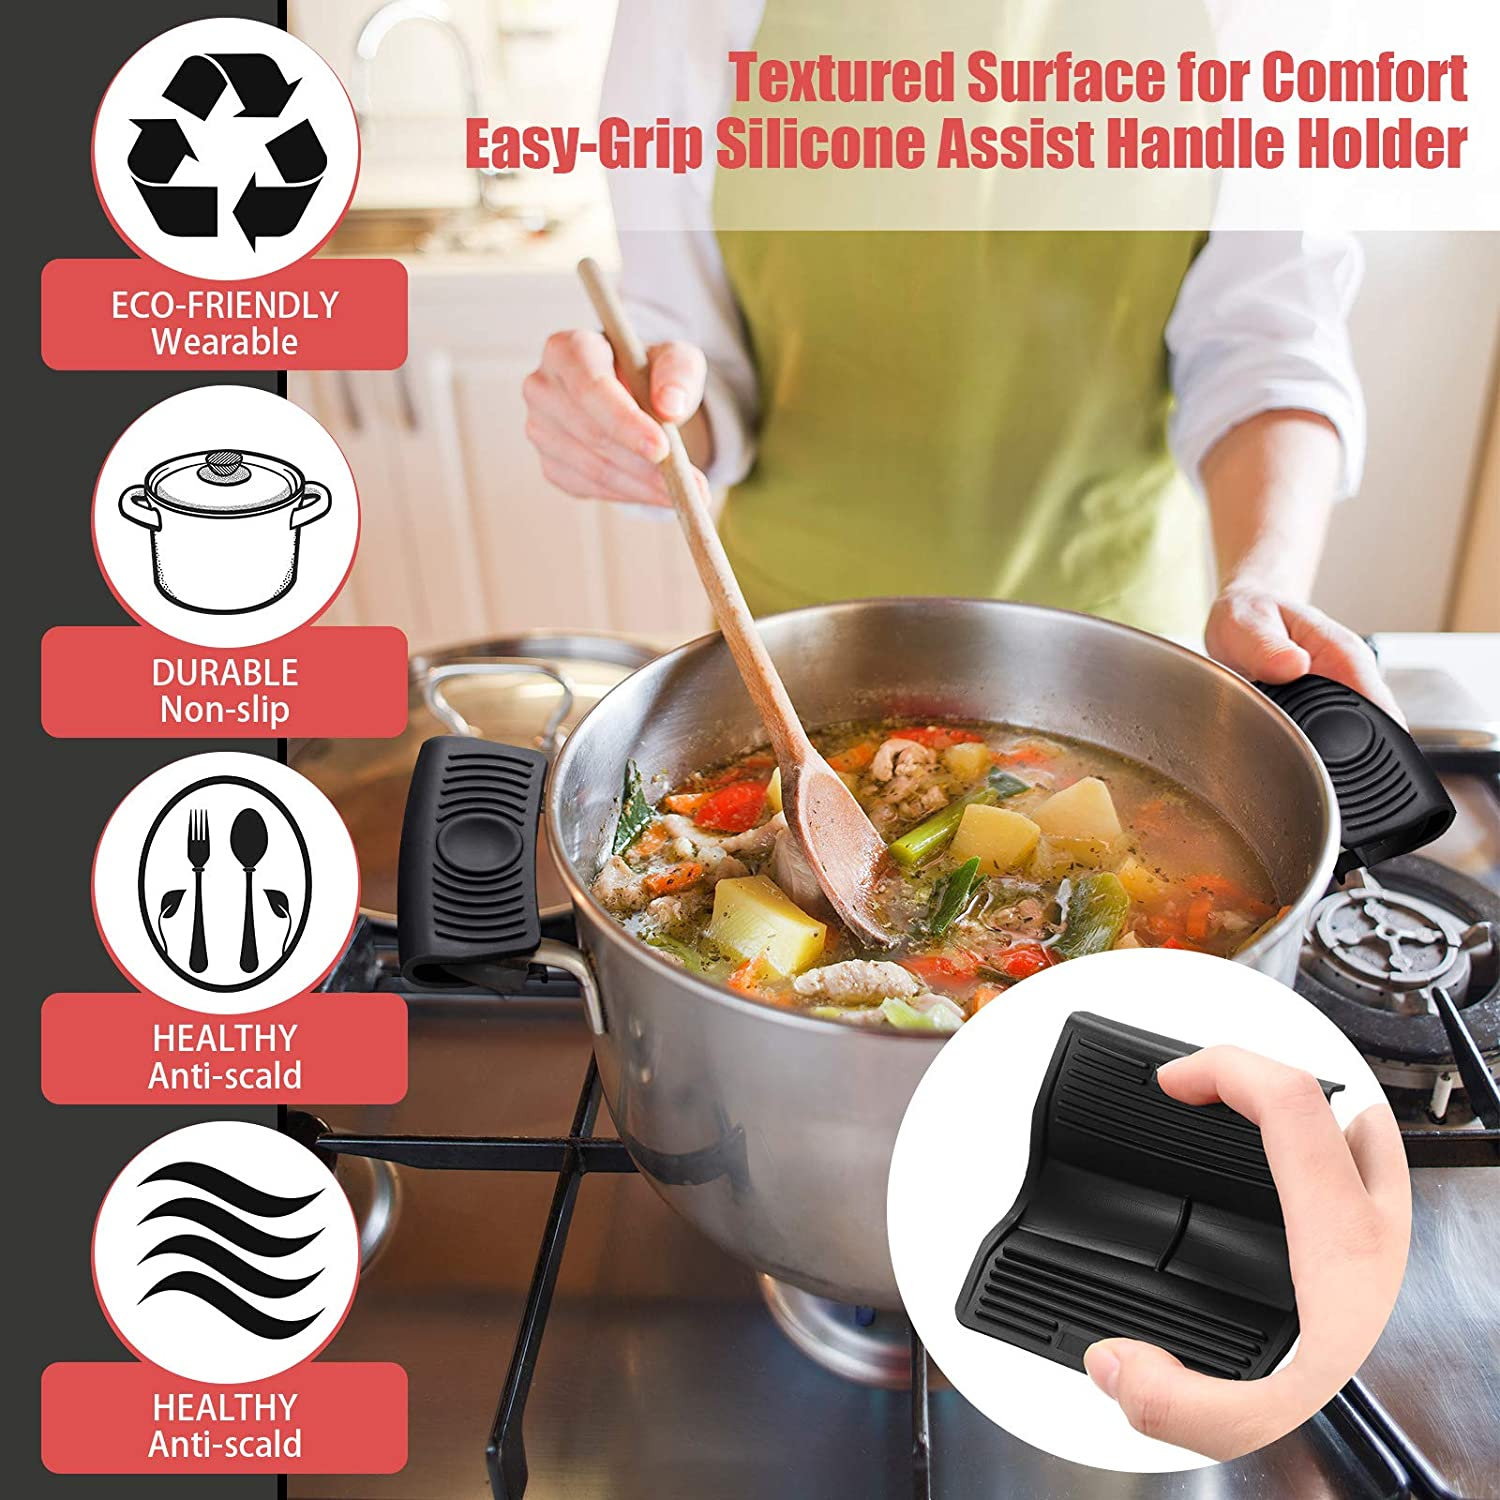 High Temperature Resistant 6 Pieces Silicone Handle Holder Silicone Hot Handle Holder Pot Handle Mitts Potholders Silicone Rubber Handle Covers Heat Insulated Cookware for Cast Iron Pans Black